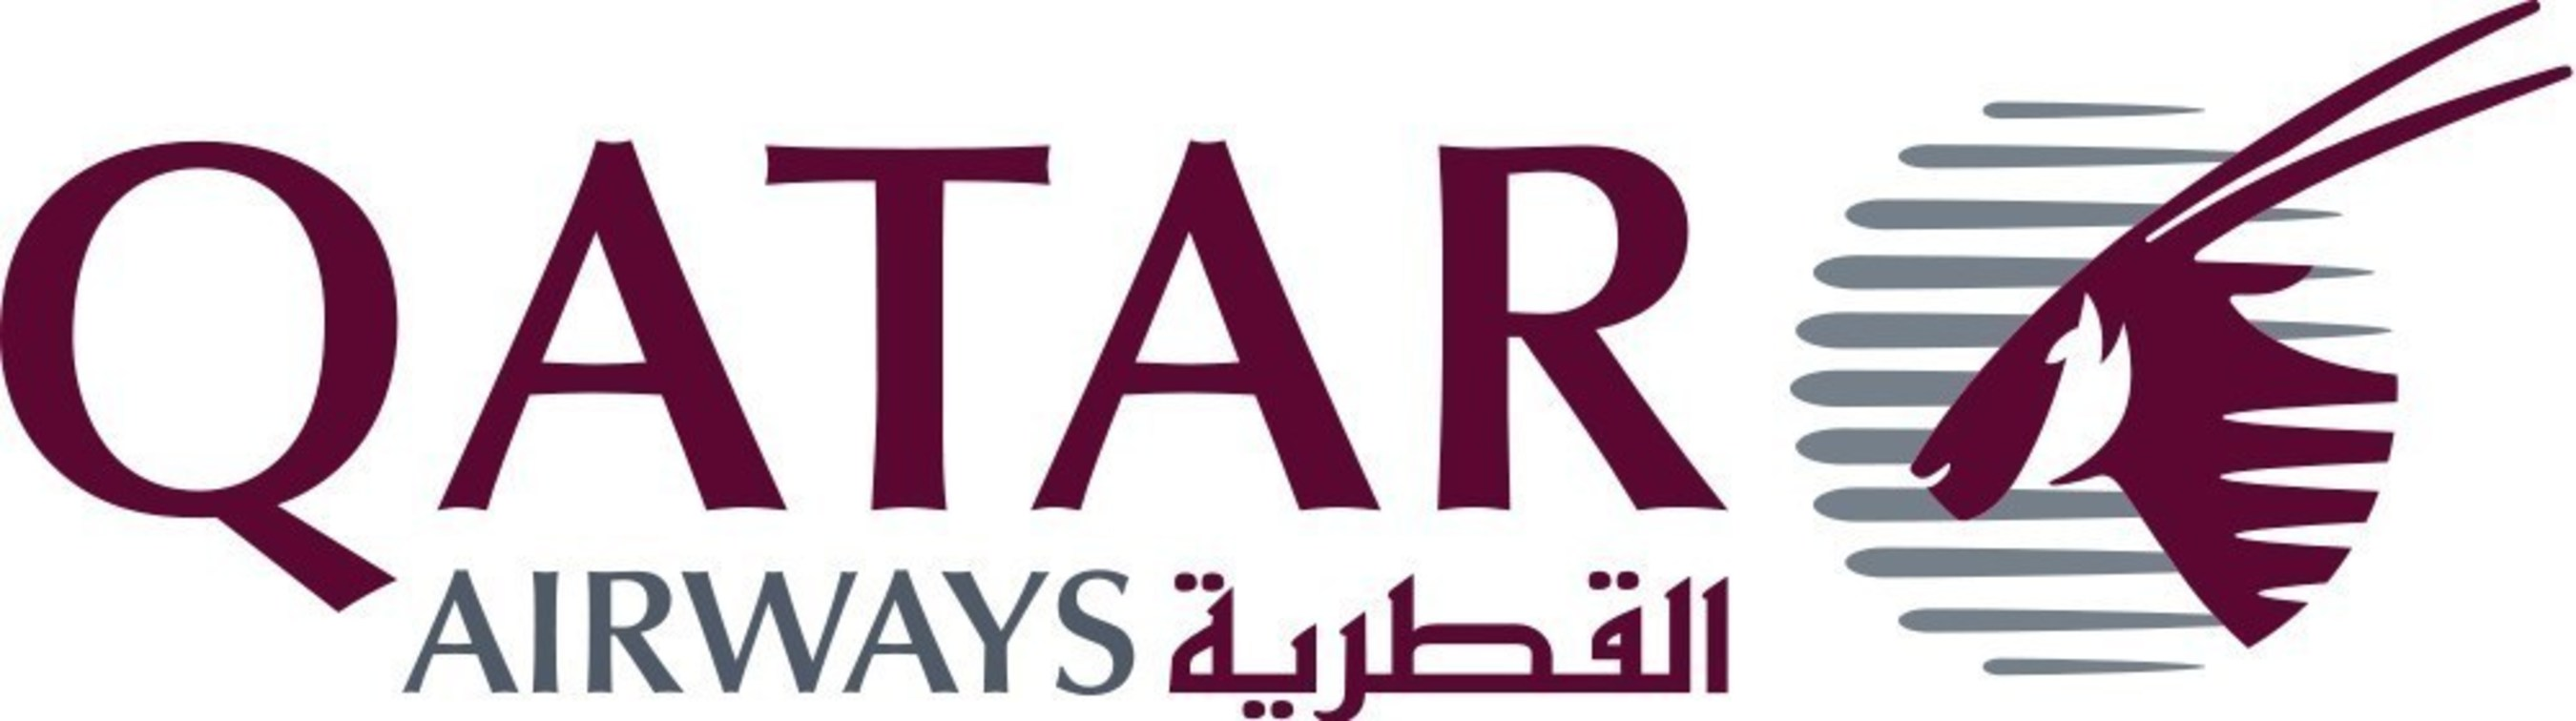 QATAR AIRWAYS SUPPORTS FRIENDS OF CONSERVATION AT THE CONSERVATION BALL